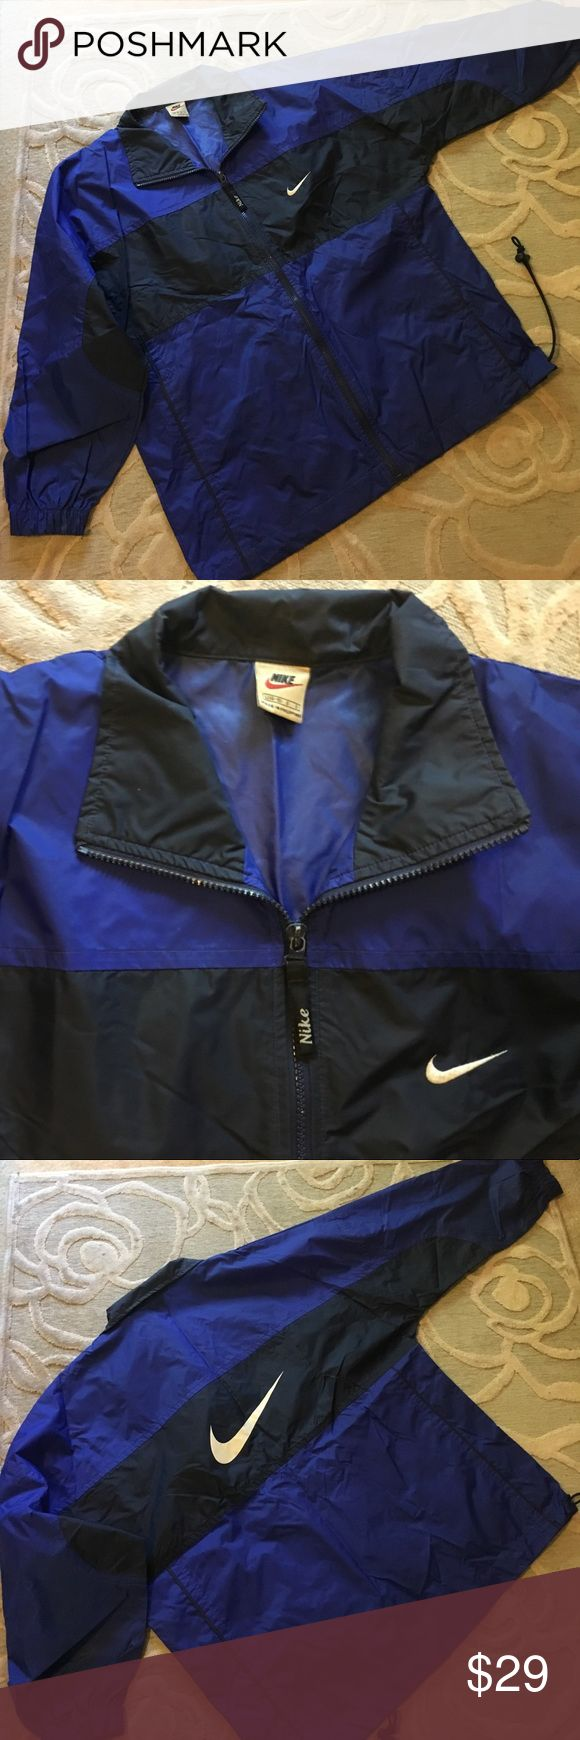 🌿NIKE🌿royal/navy blue unlined windbreaker jacket 🌿NIKE🌿royal/navy blue unlined windbreaker jacket.  Durable slick nylon perfect for rainy day or any light wear sporty jacket needs.   Zip front.  Two hidden side pockets.  Drawstring waist.  Great near new condition.  Boys large 14/16 also works for girls or small lady. Nike Jackets & Coats Raincoats